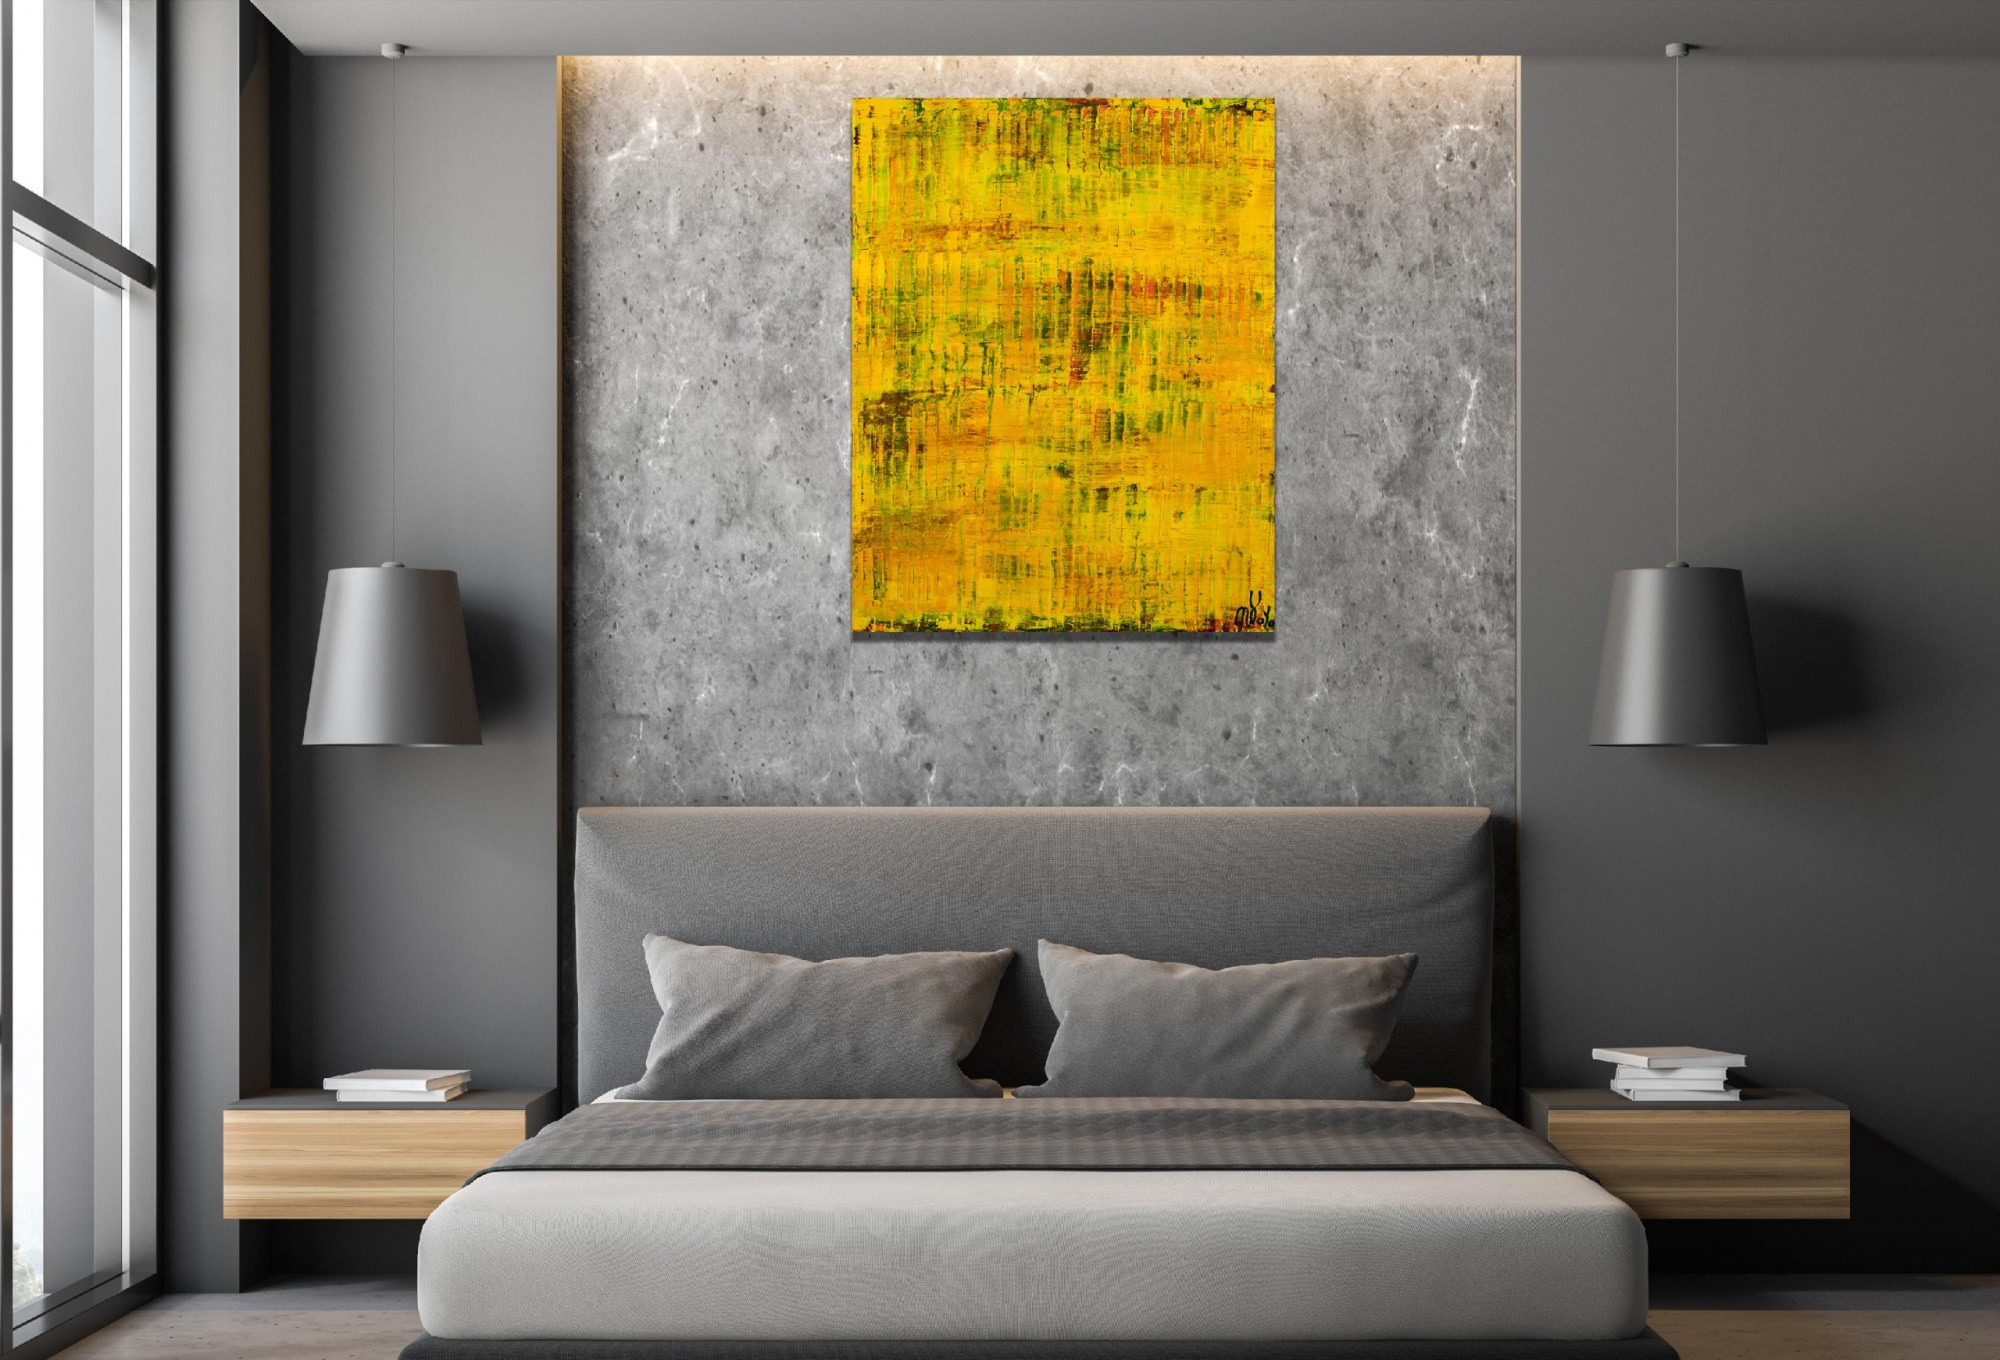 Room example / Yellow Reunion (Lost Lights) (2021) - 24x36 inches /Artist Nestor Toro